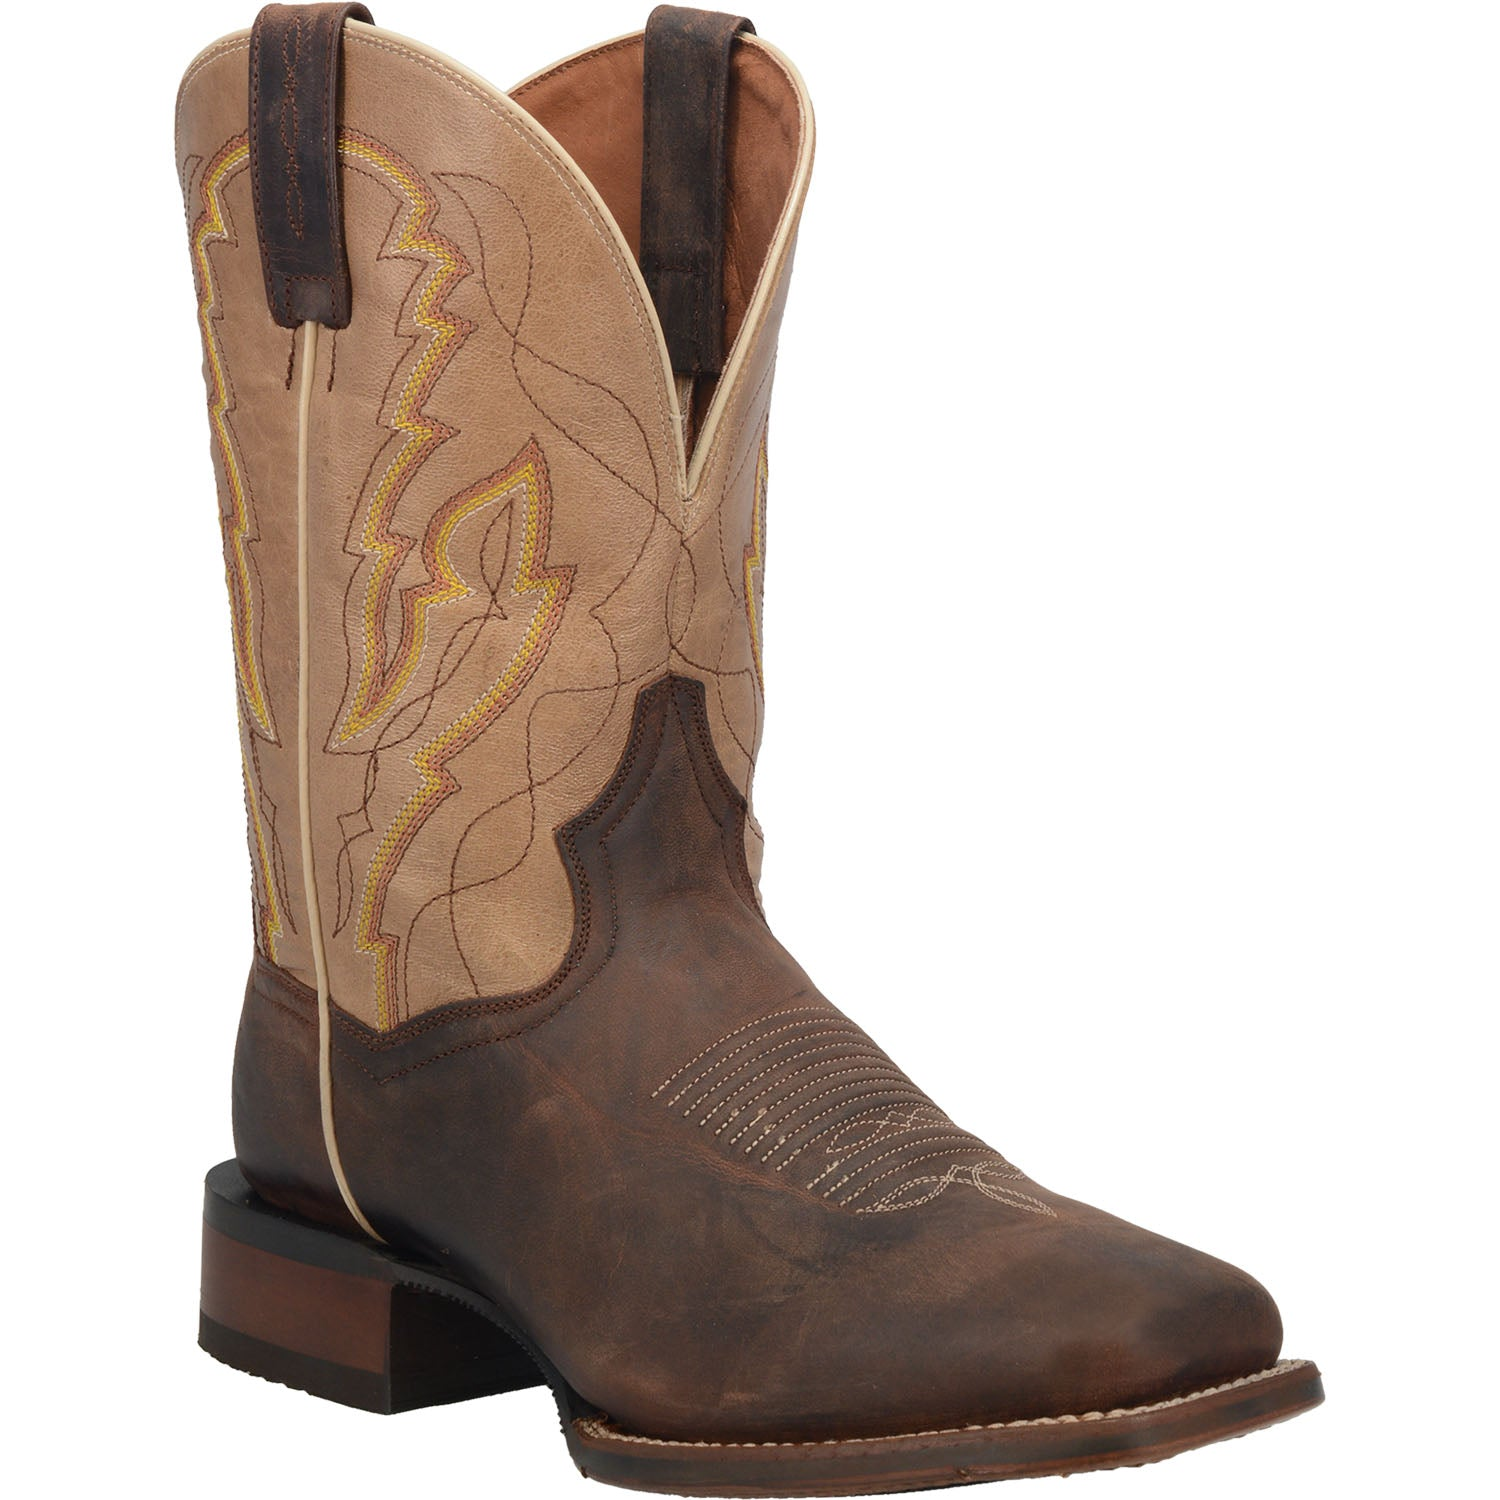 GARRISON LEATHER BOOT 15973511364650